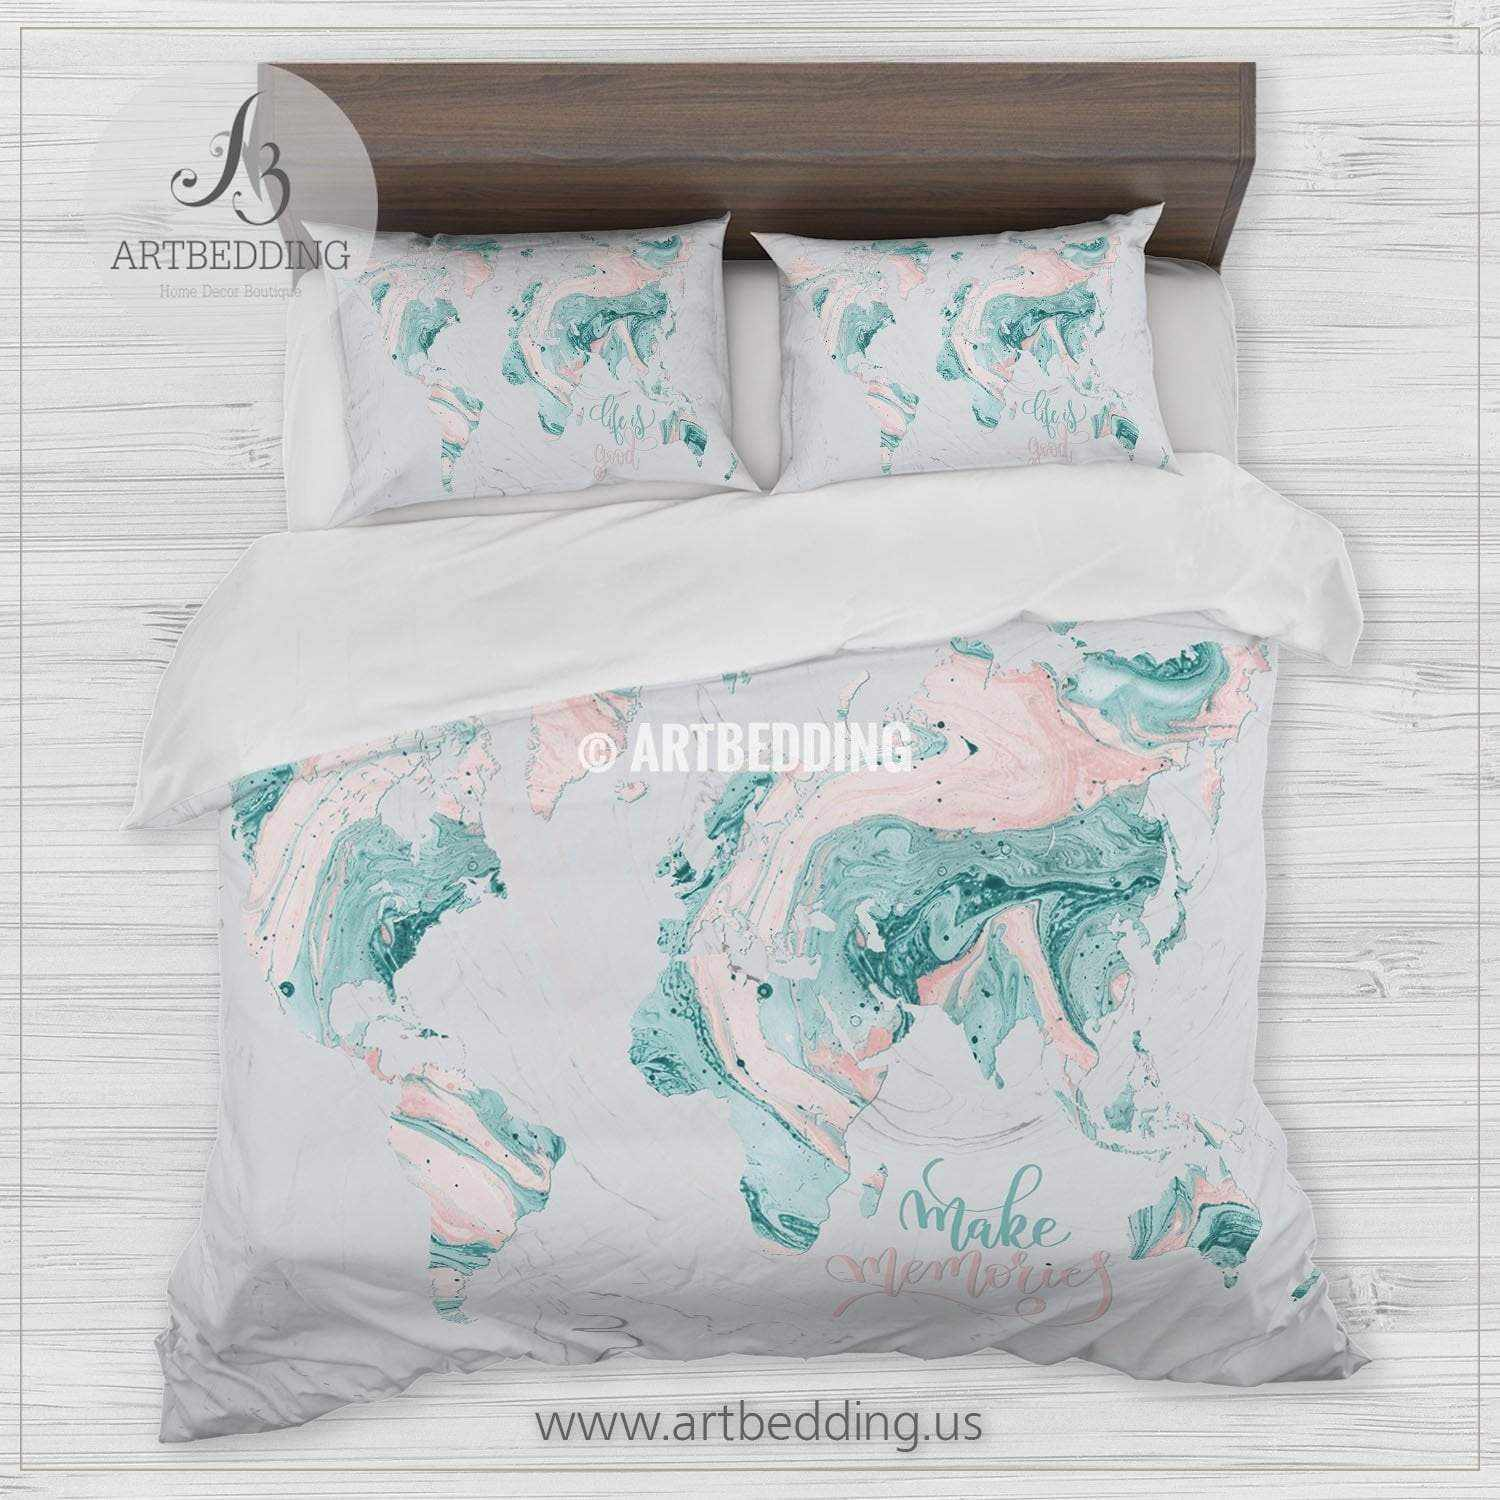 Blush Pink Quilt Cover Marble Map Bedding Teal And Blush Pink Marble Abstract Art World Map Duvet Cover Set Marble Map Comforter Set